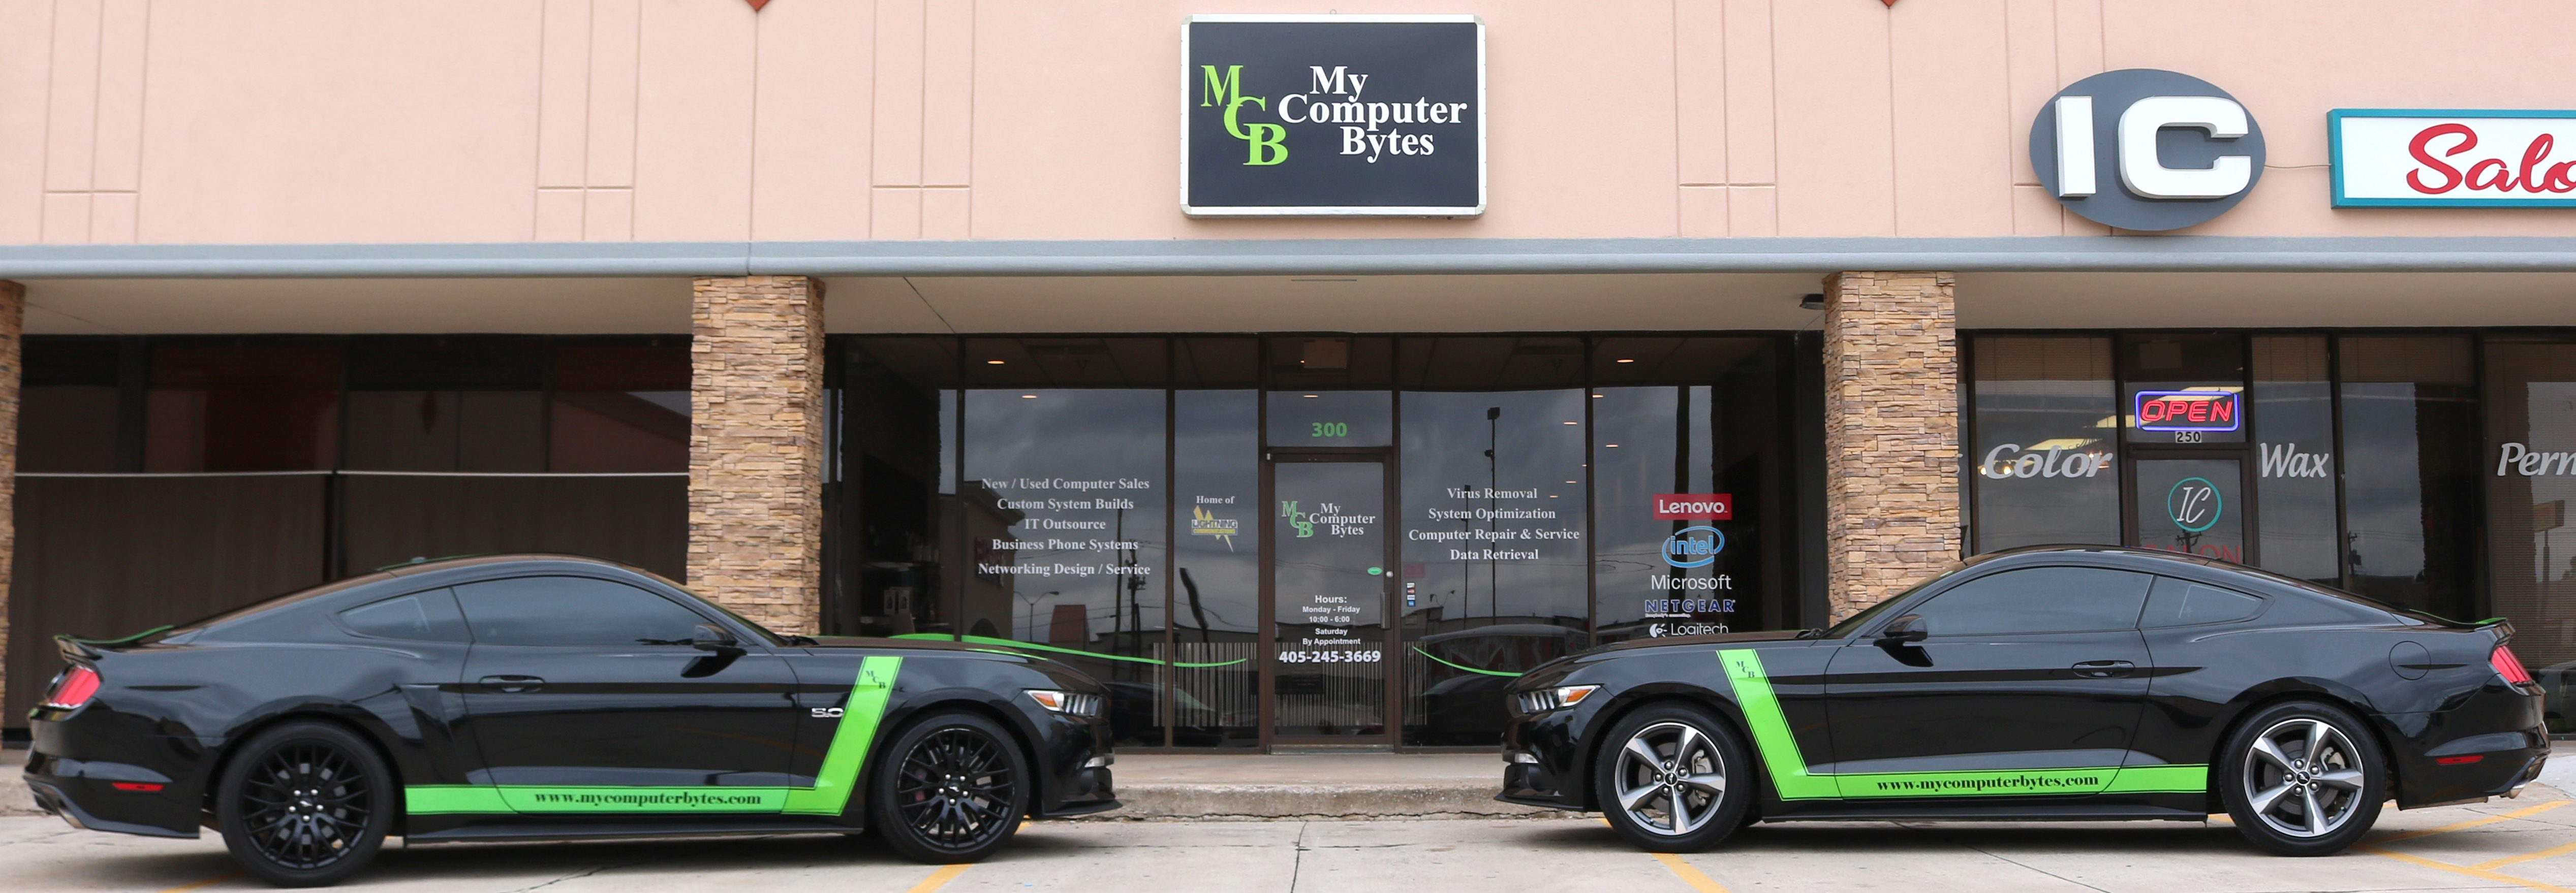 My Computer Bytes - OKC Computer Repair & IT Services